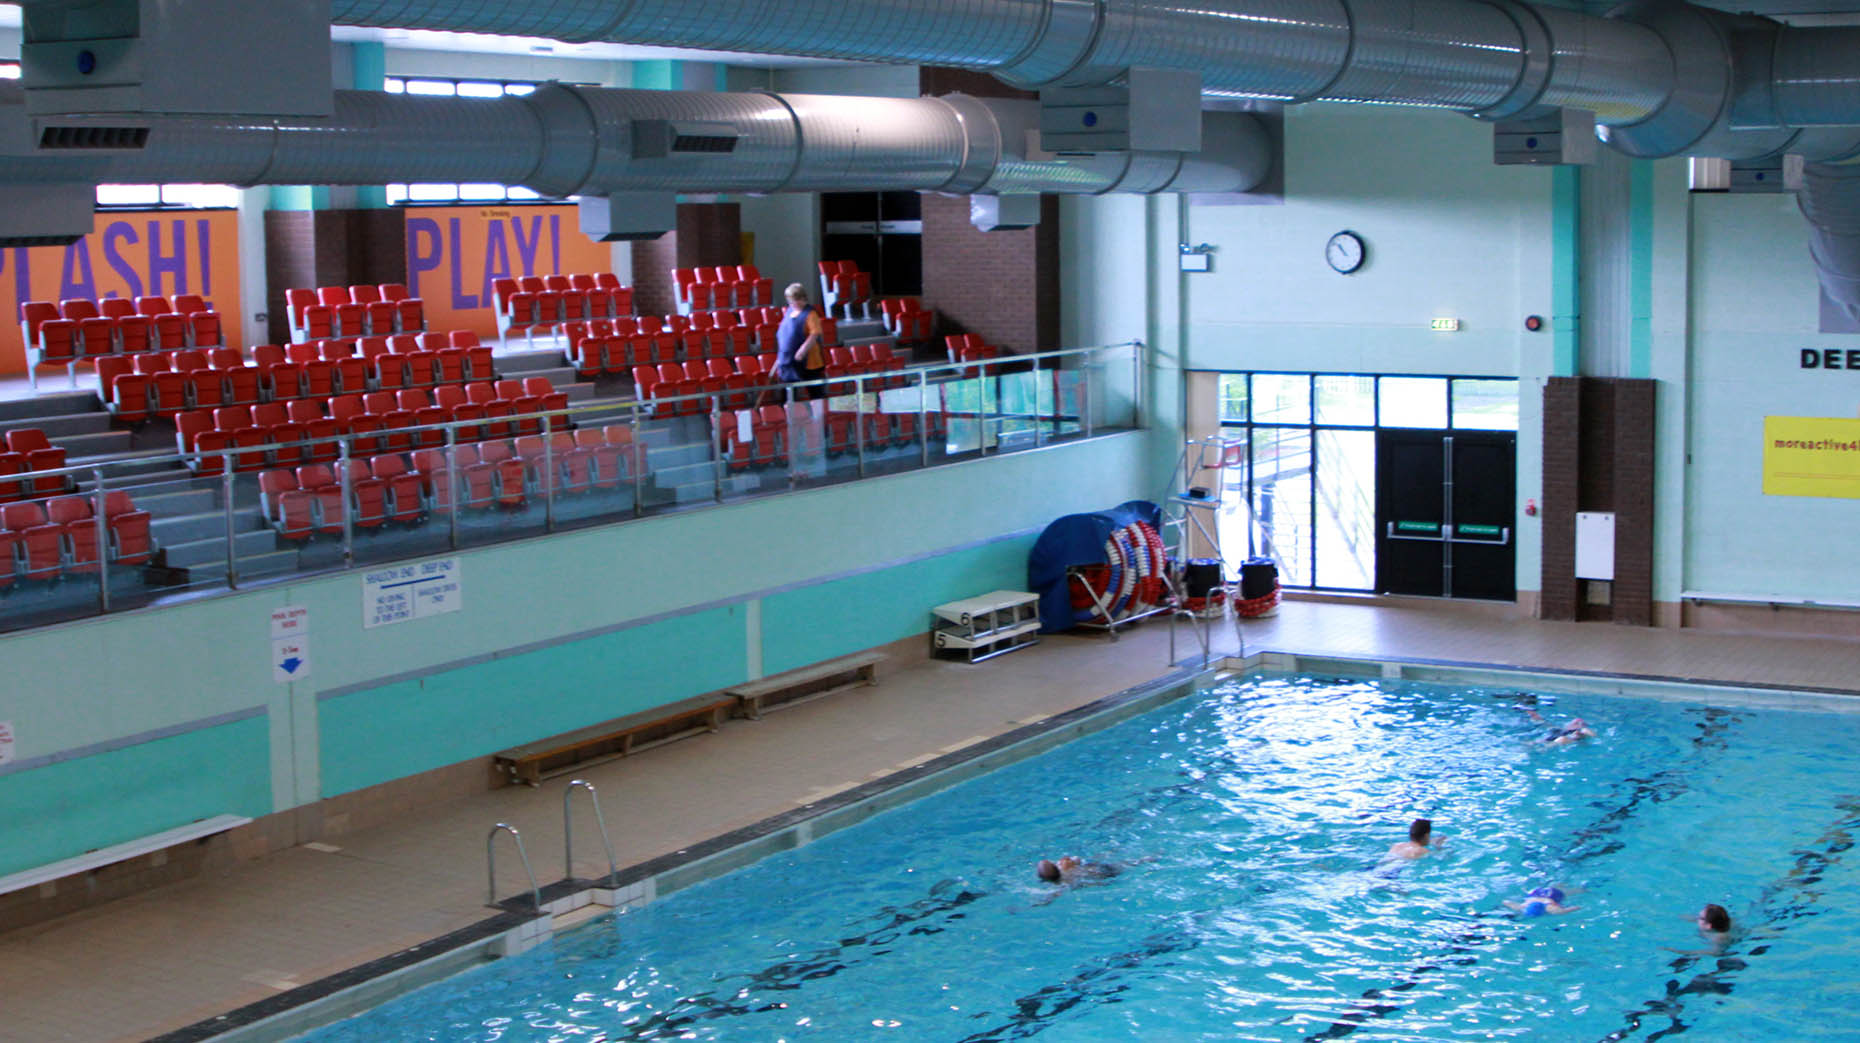 leak causes closure of swimming pool and studios at lincoln leisure centre